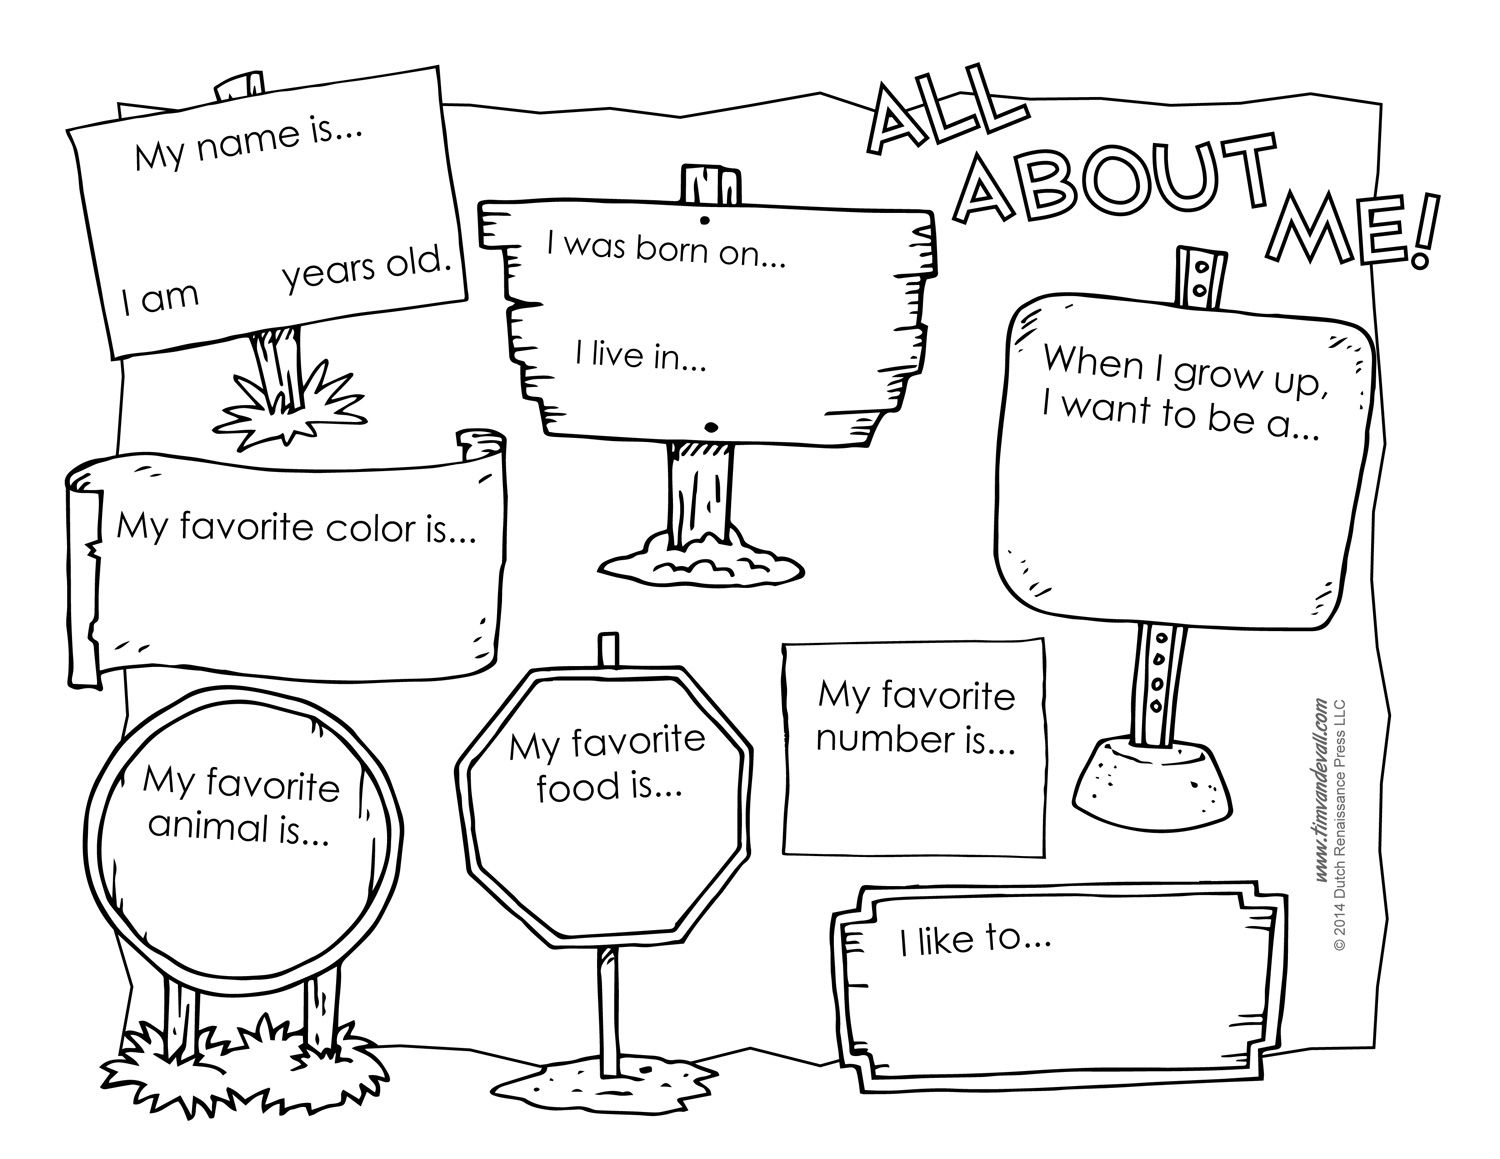 Worksheets All About Me Free Printable Worksheets all about me worksheets black and white versions coloring pages versions